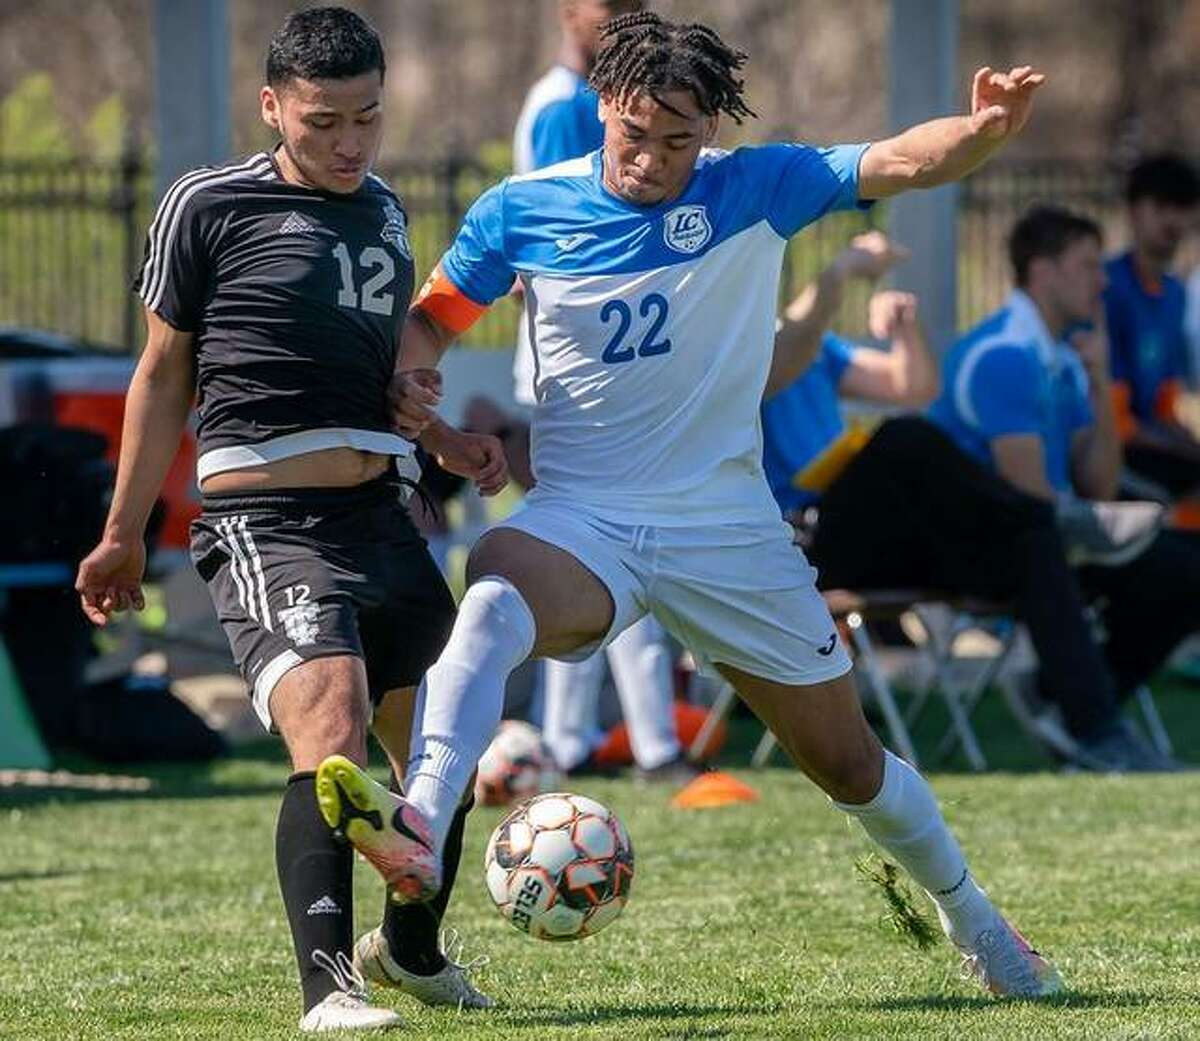 LCCC's Spencer Barber, a freshman from Ontario, Canada, led the Trailblazers with six goals during their abbreviated six-game spring schedule.